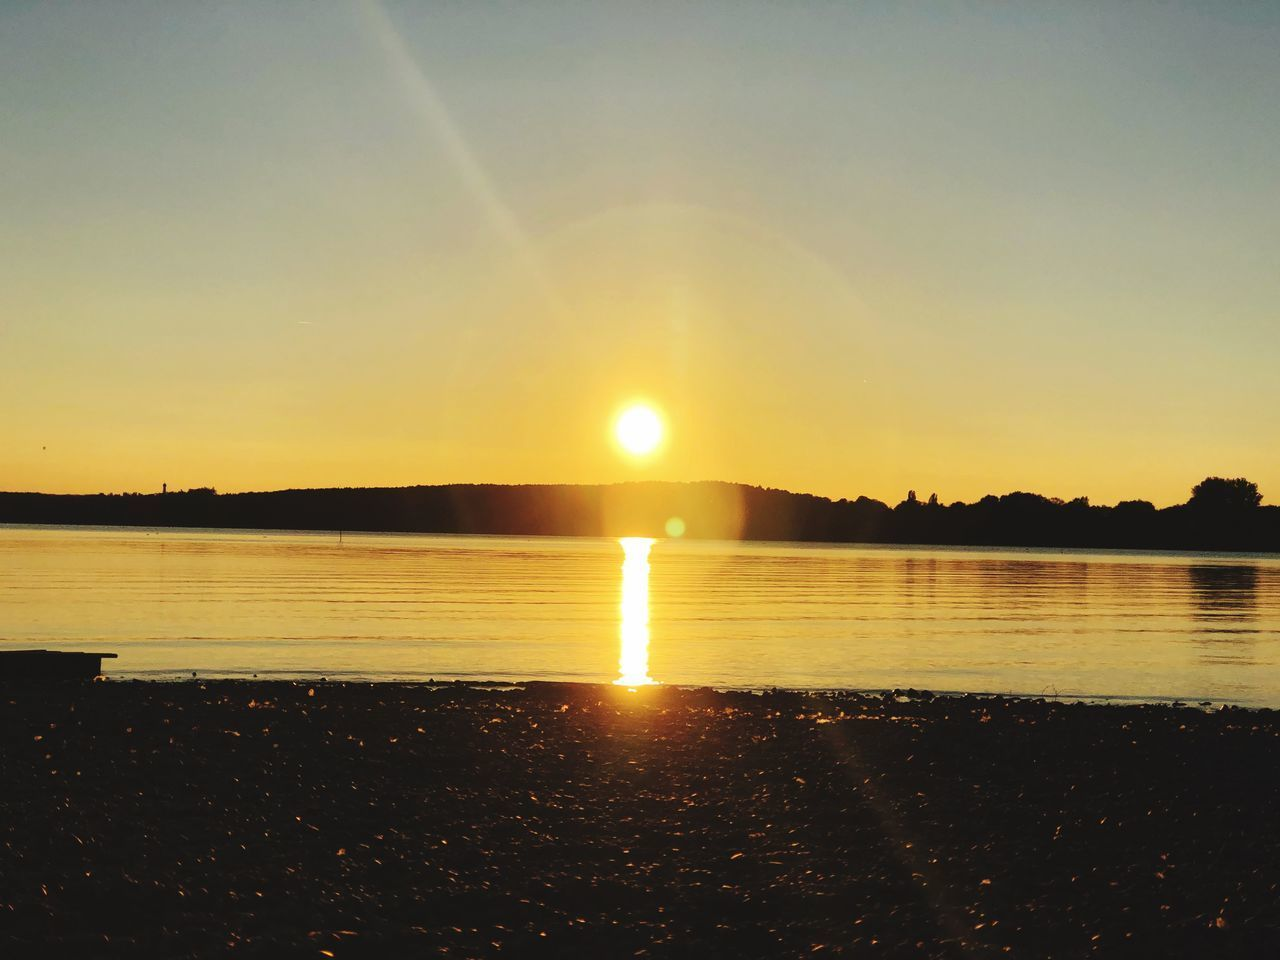 sky, water, sunset, beauty in nature, scenics - nature, tranquility, tranquil scene, sun, reflection, sunlight, nature, no people, idyllic, lens flare, sunbeam, lake, beach, orange color, outdoors, bright